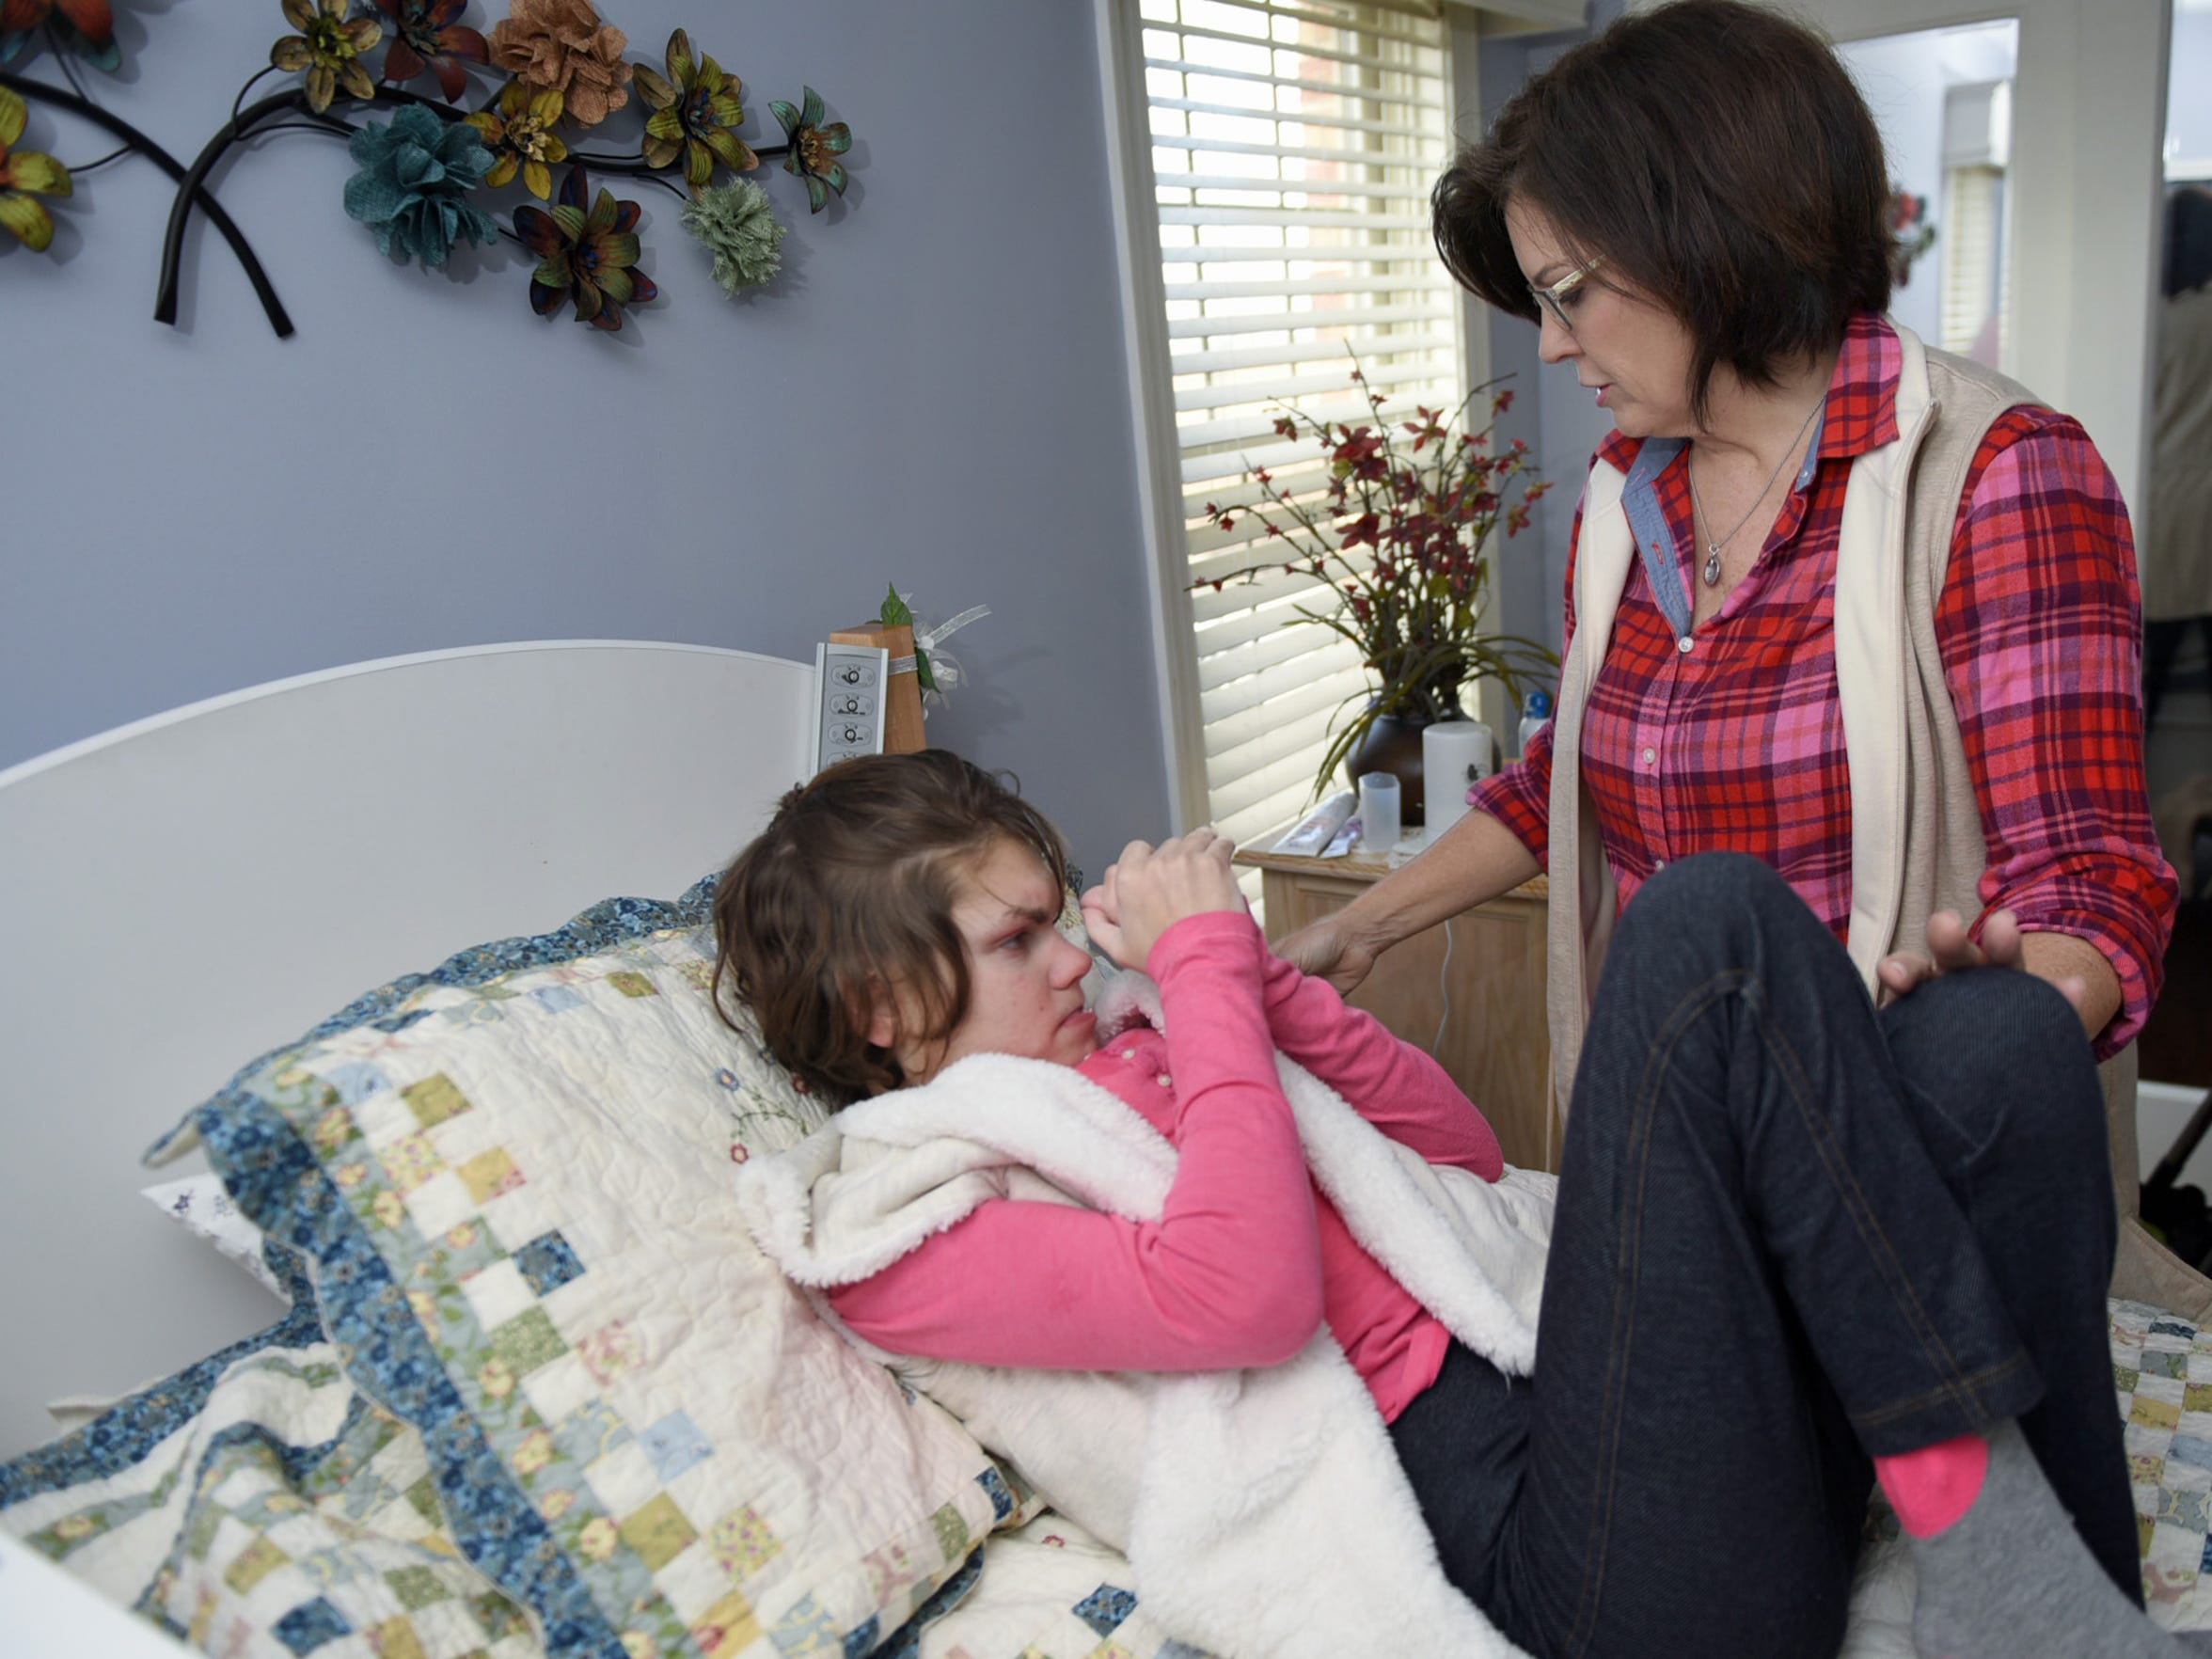 Karen Diller helps her daughter, Karly, 20, out of